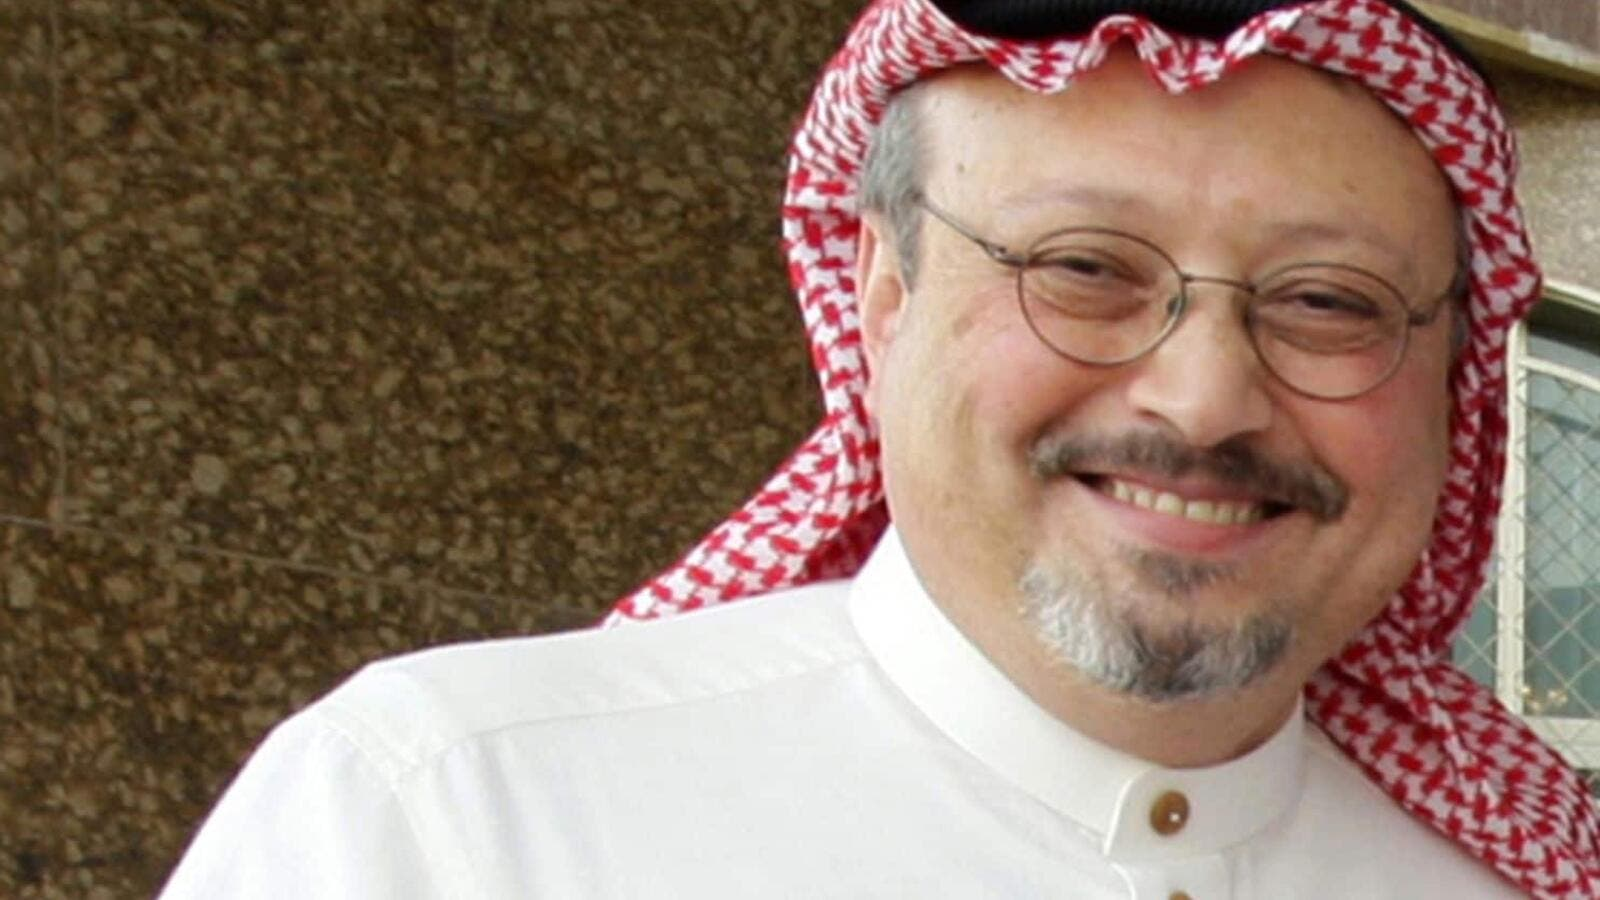 An undated picture shows prominent Saudi journalist Jamal Khashoggi. (AFP/ File Photo)